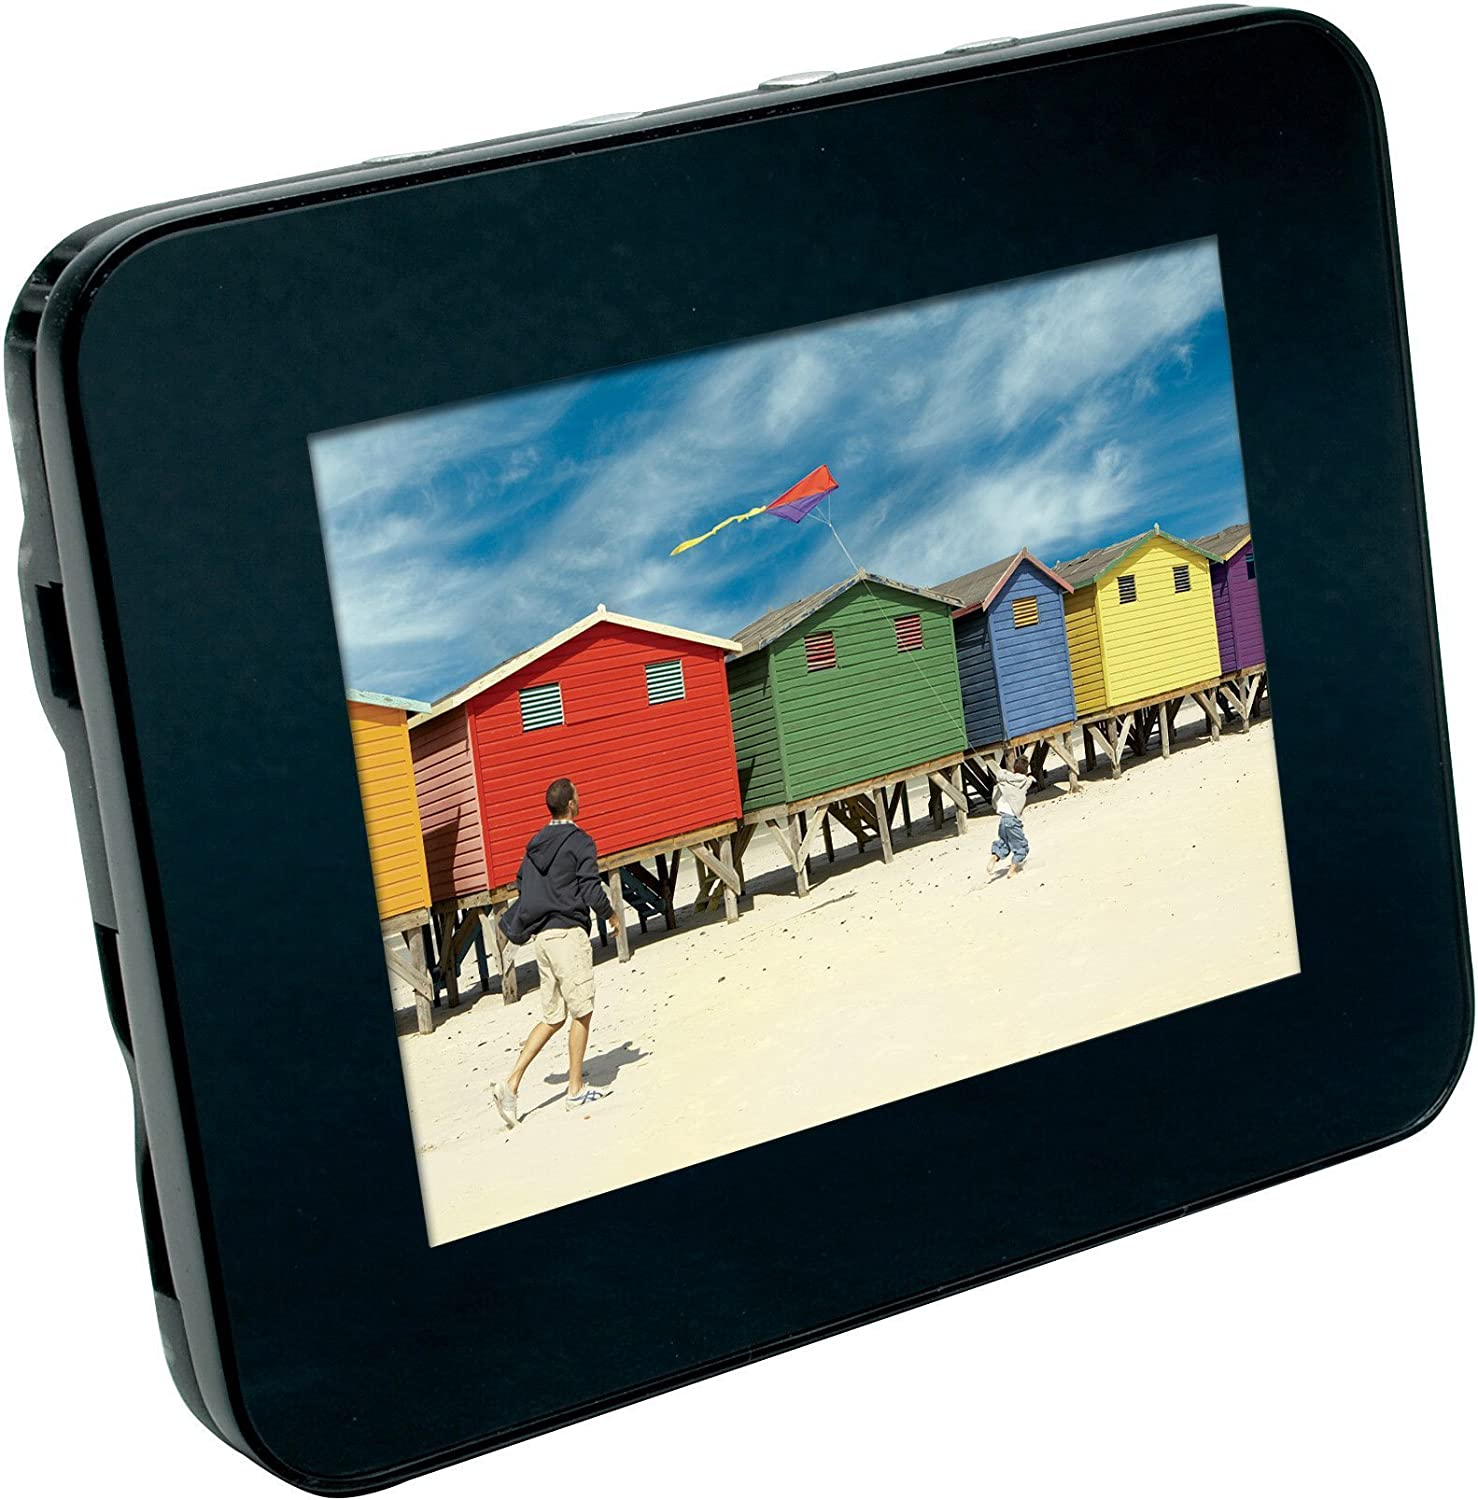 Polaroid 3 5 Inch Portable Digital Picture Frame Amazon Co Uk Camera Photo